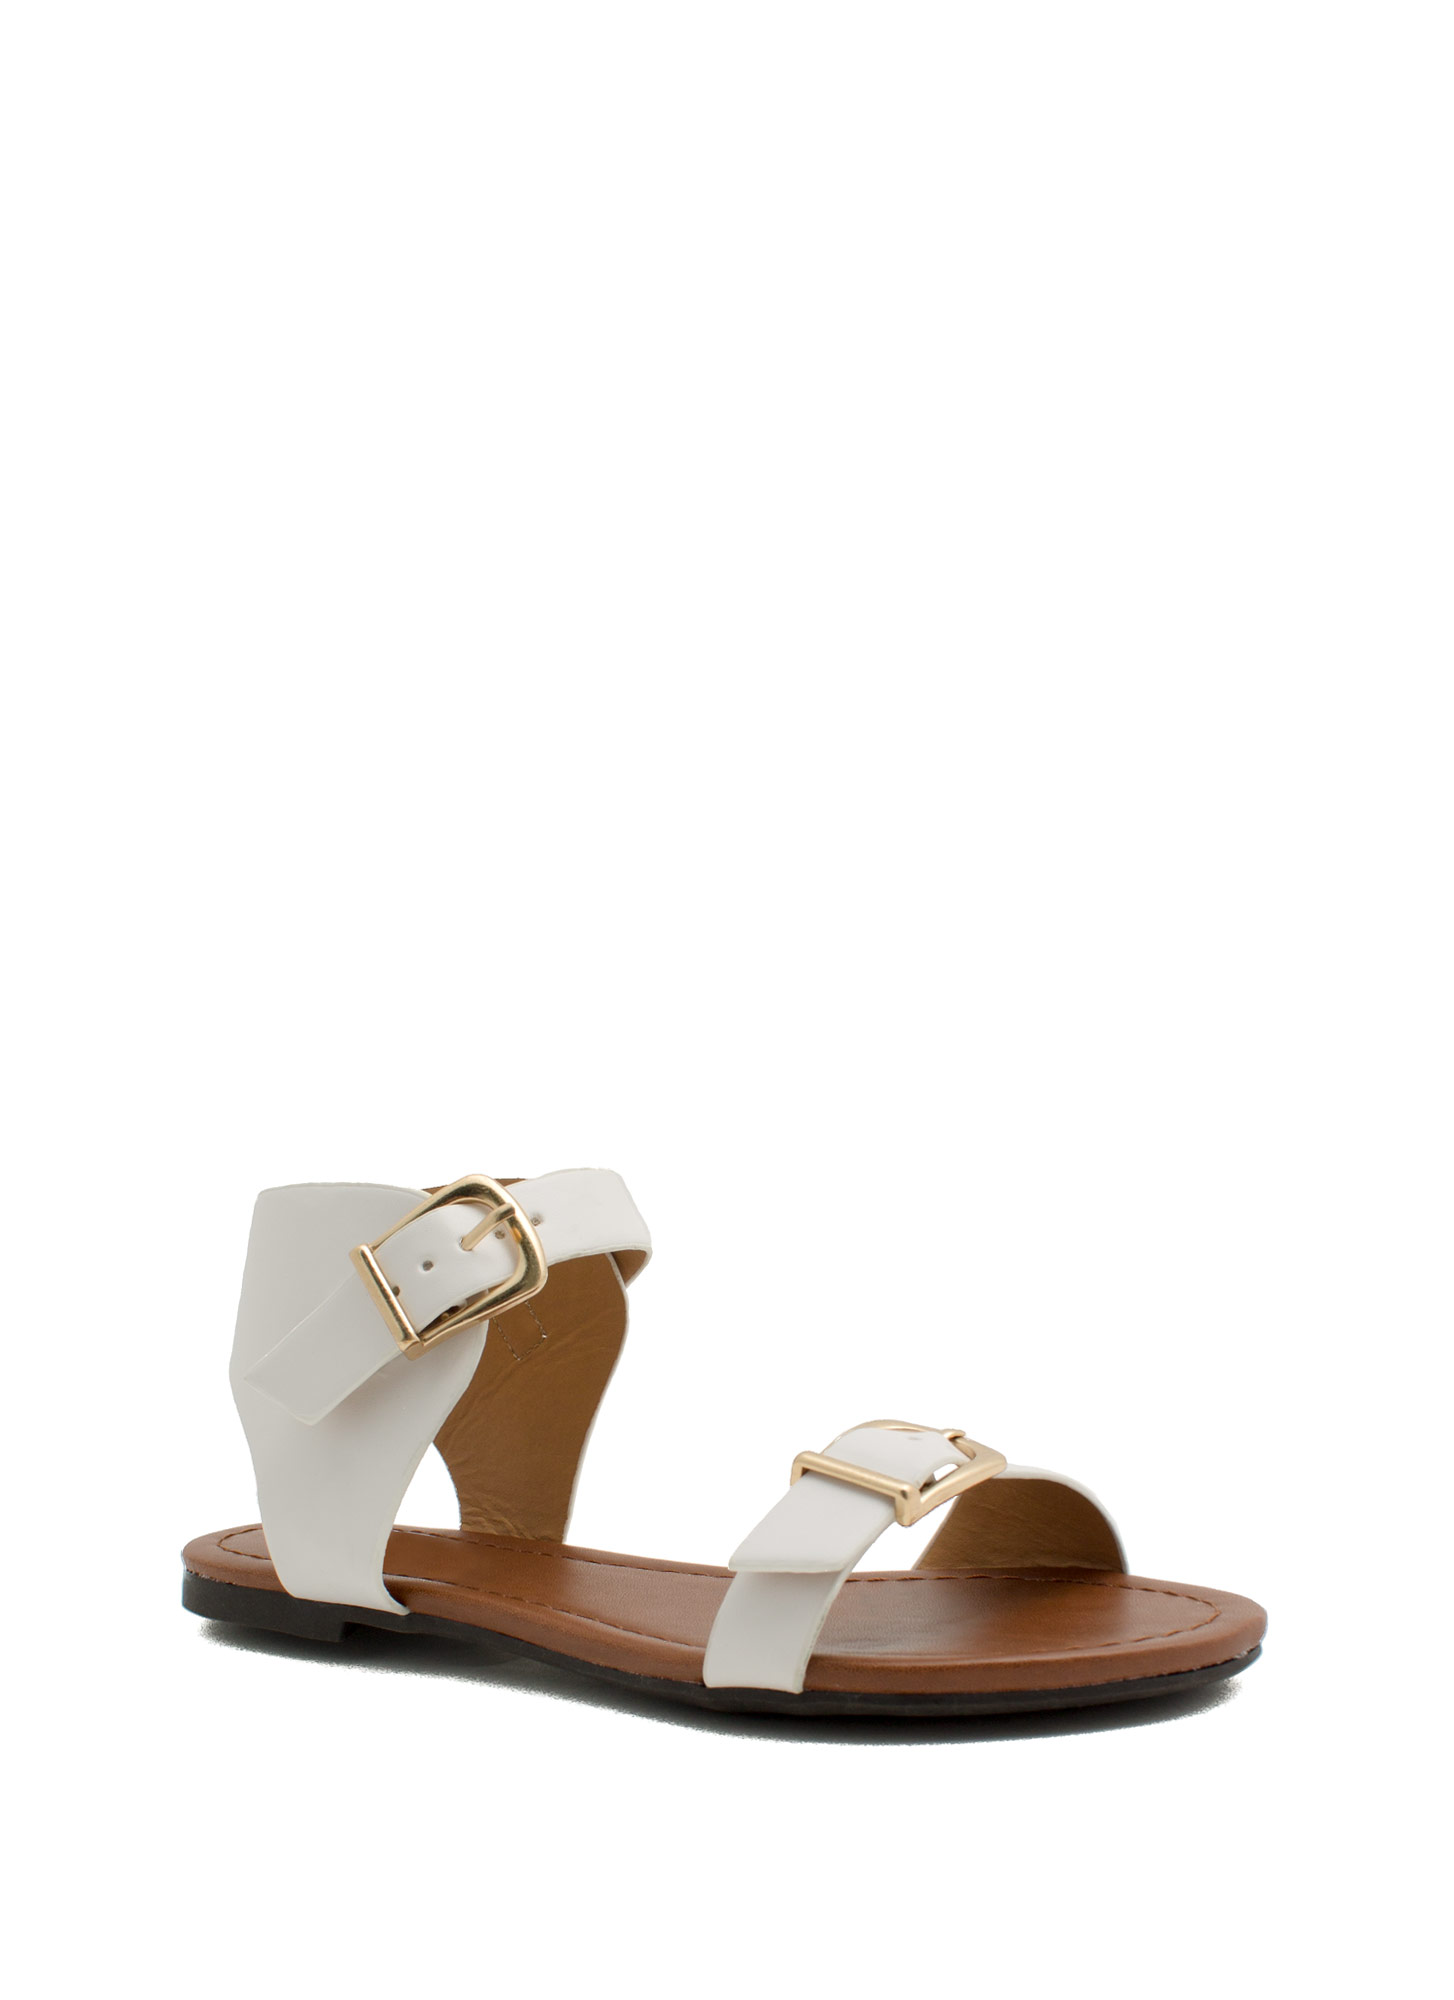 Buckle Stops Here Faux Leather Sandals OFFWHITE